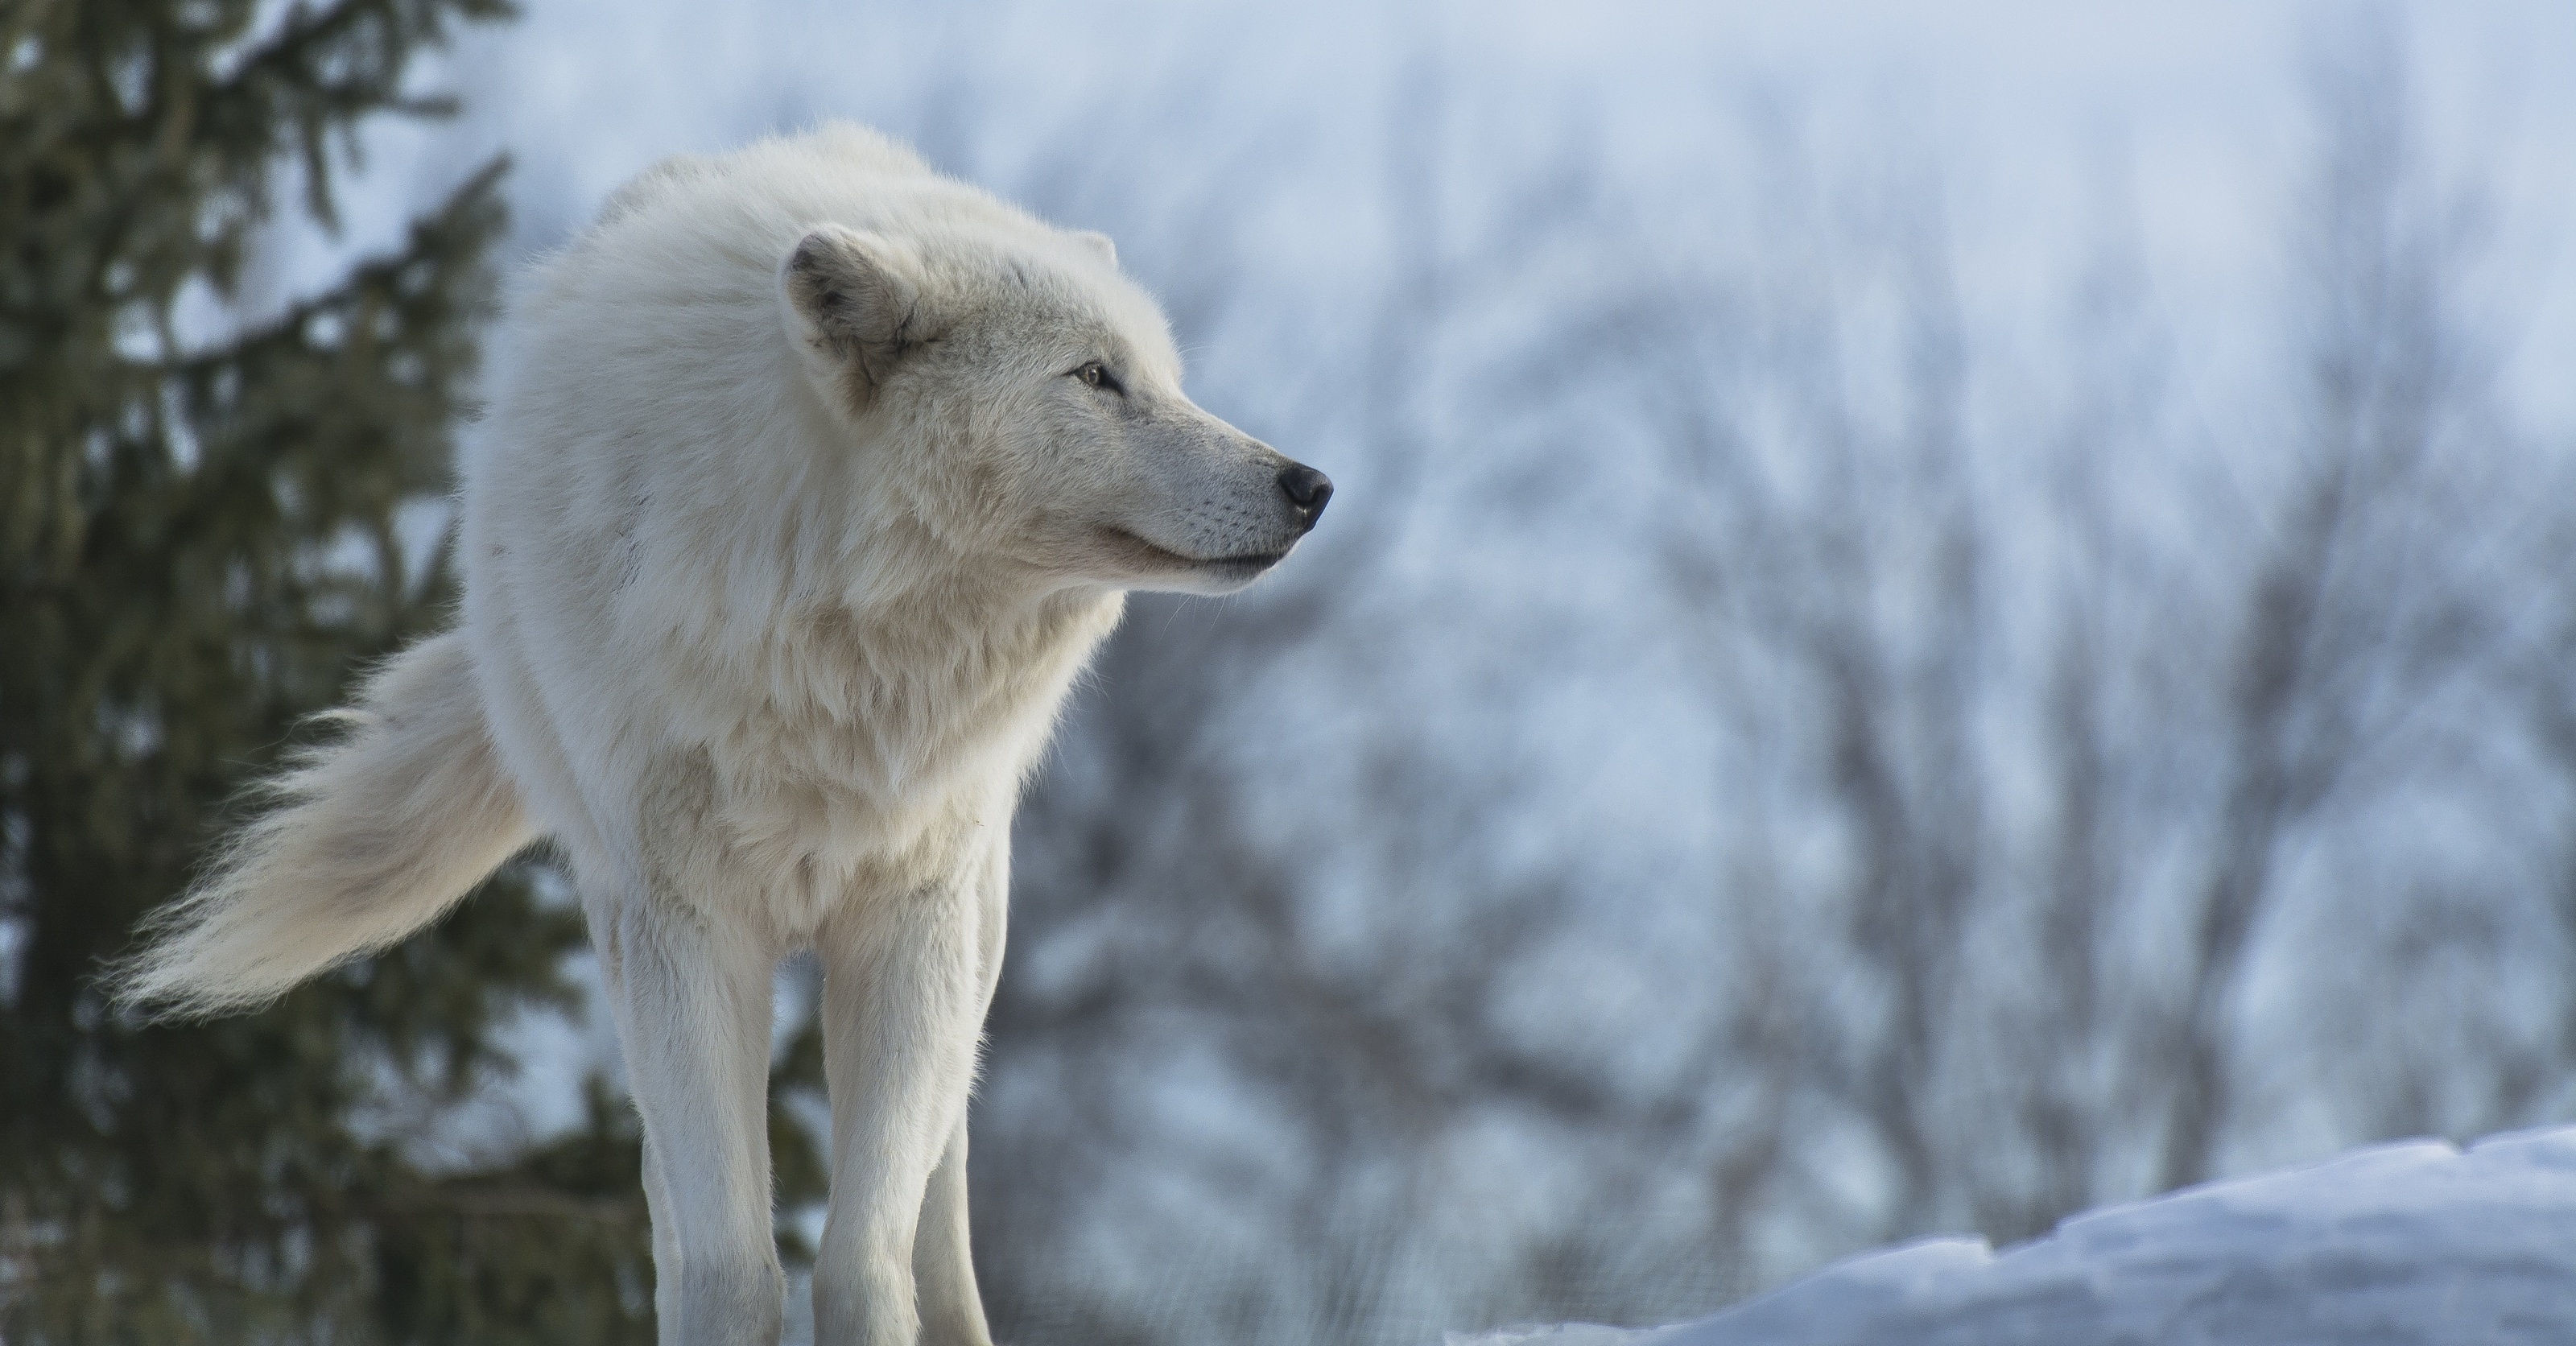 Res: 3200x1672, Widescreen For White Wolf Wallpaper Hd Resolution Desktop Images Mobile